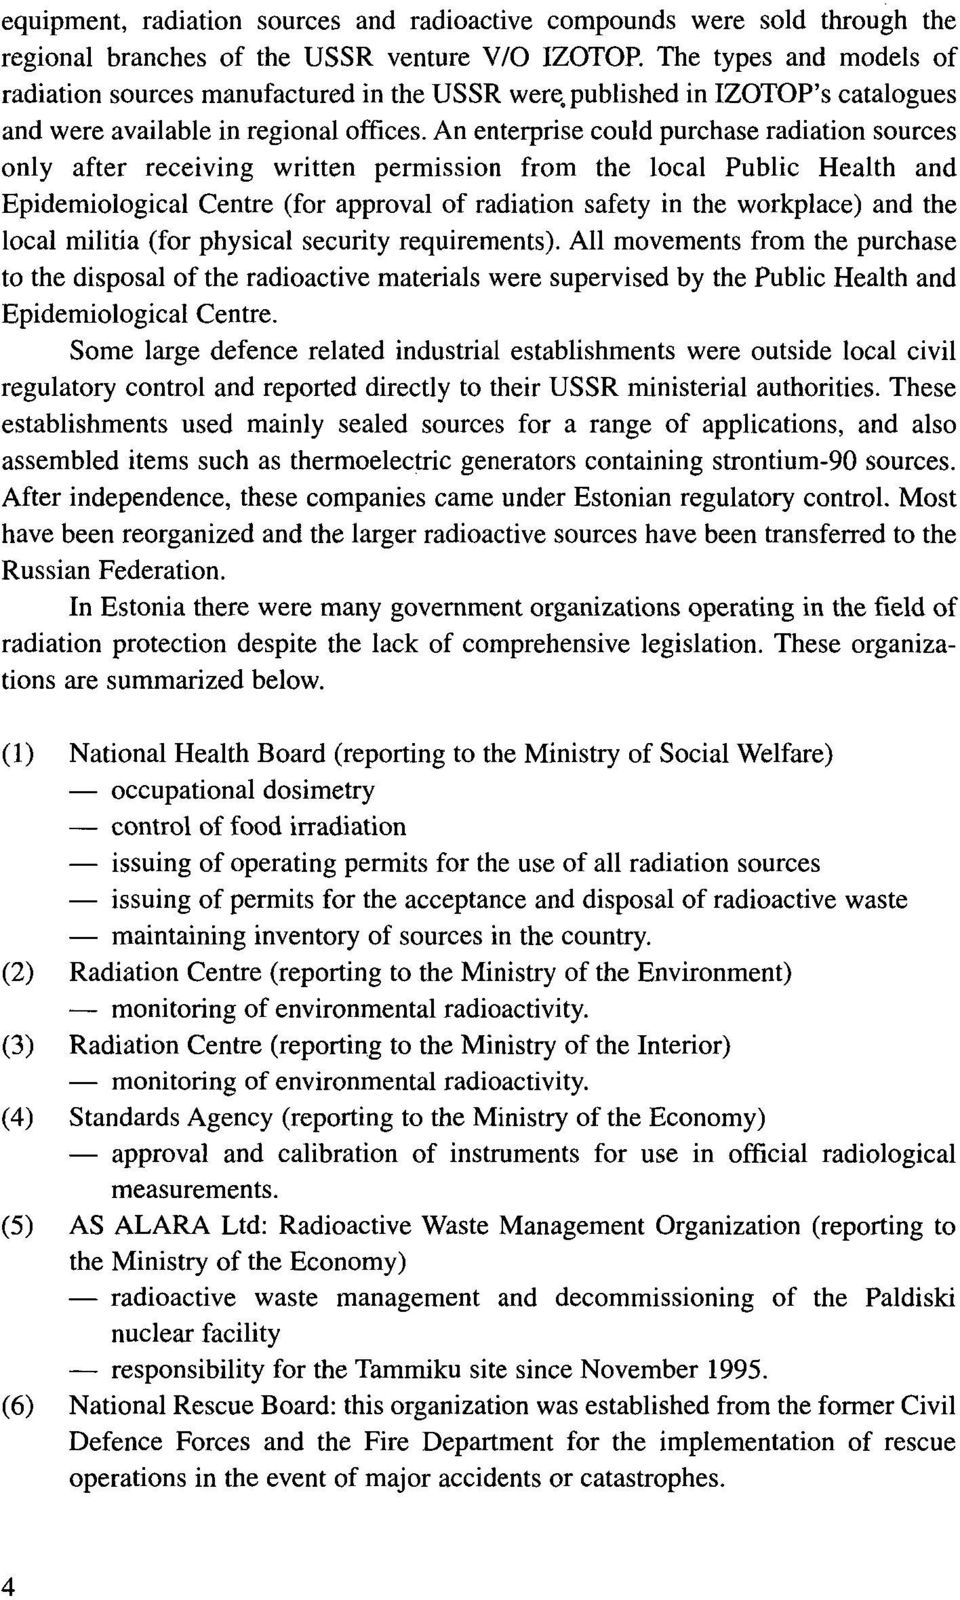 An enterprise could purchase radiation sources only after receiving written permission from the local Public Health and Epidemiological Centre (for approval of radiation safety in the workplace) and